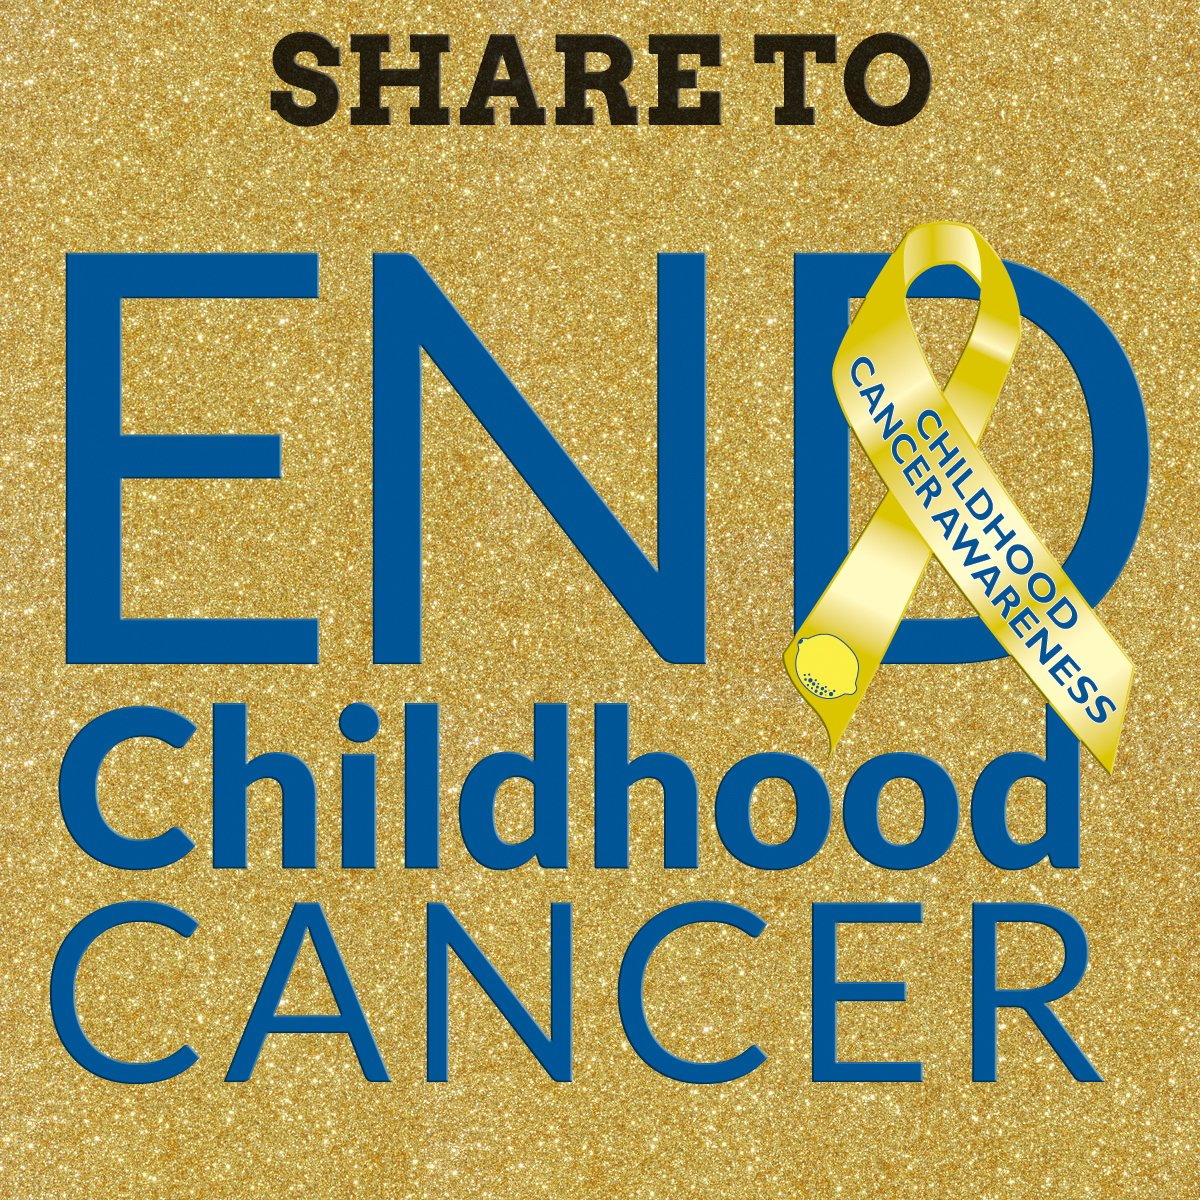 Today is our Childhood Cancer Awareness Day! Share this photo to show your support of all kids fighting cancer! https://t.co/BVBlLERbS9